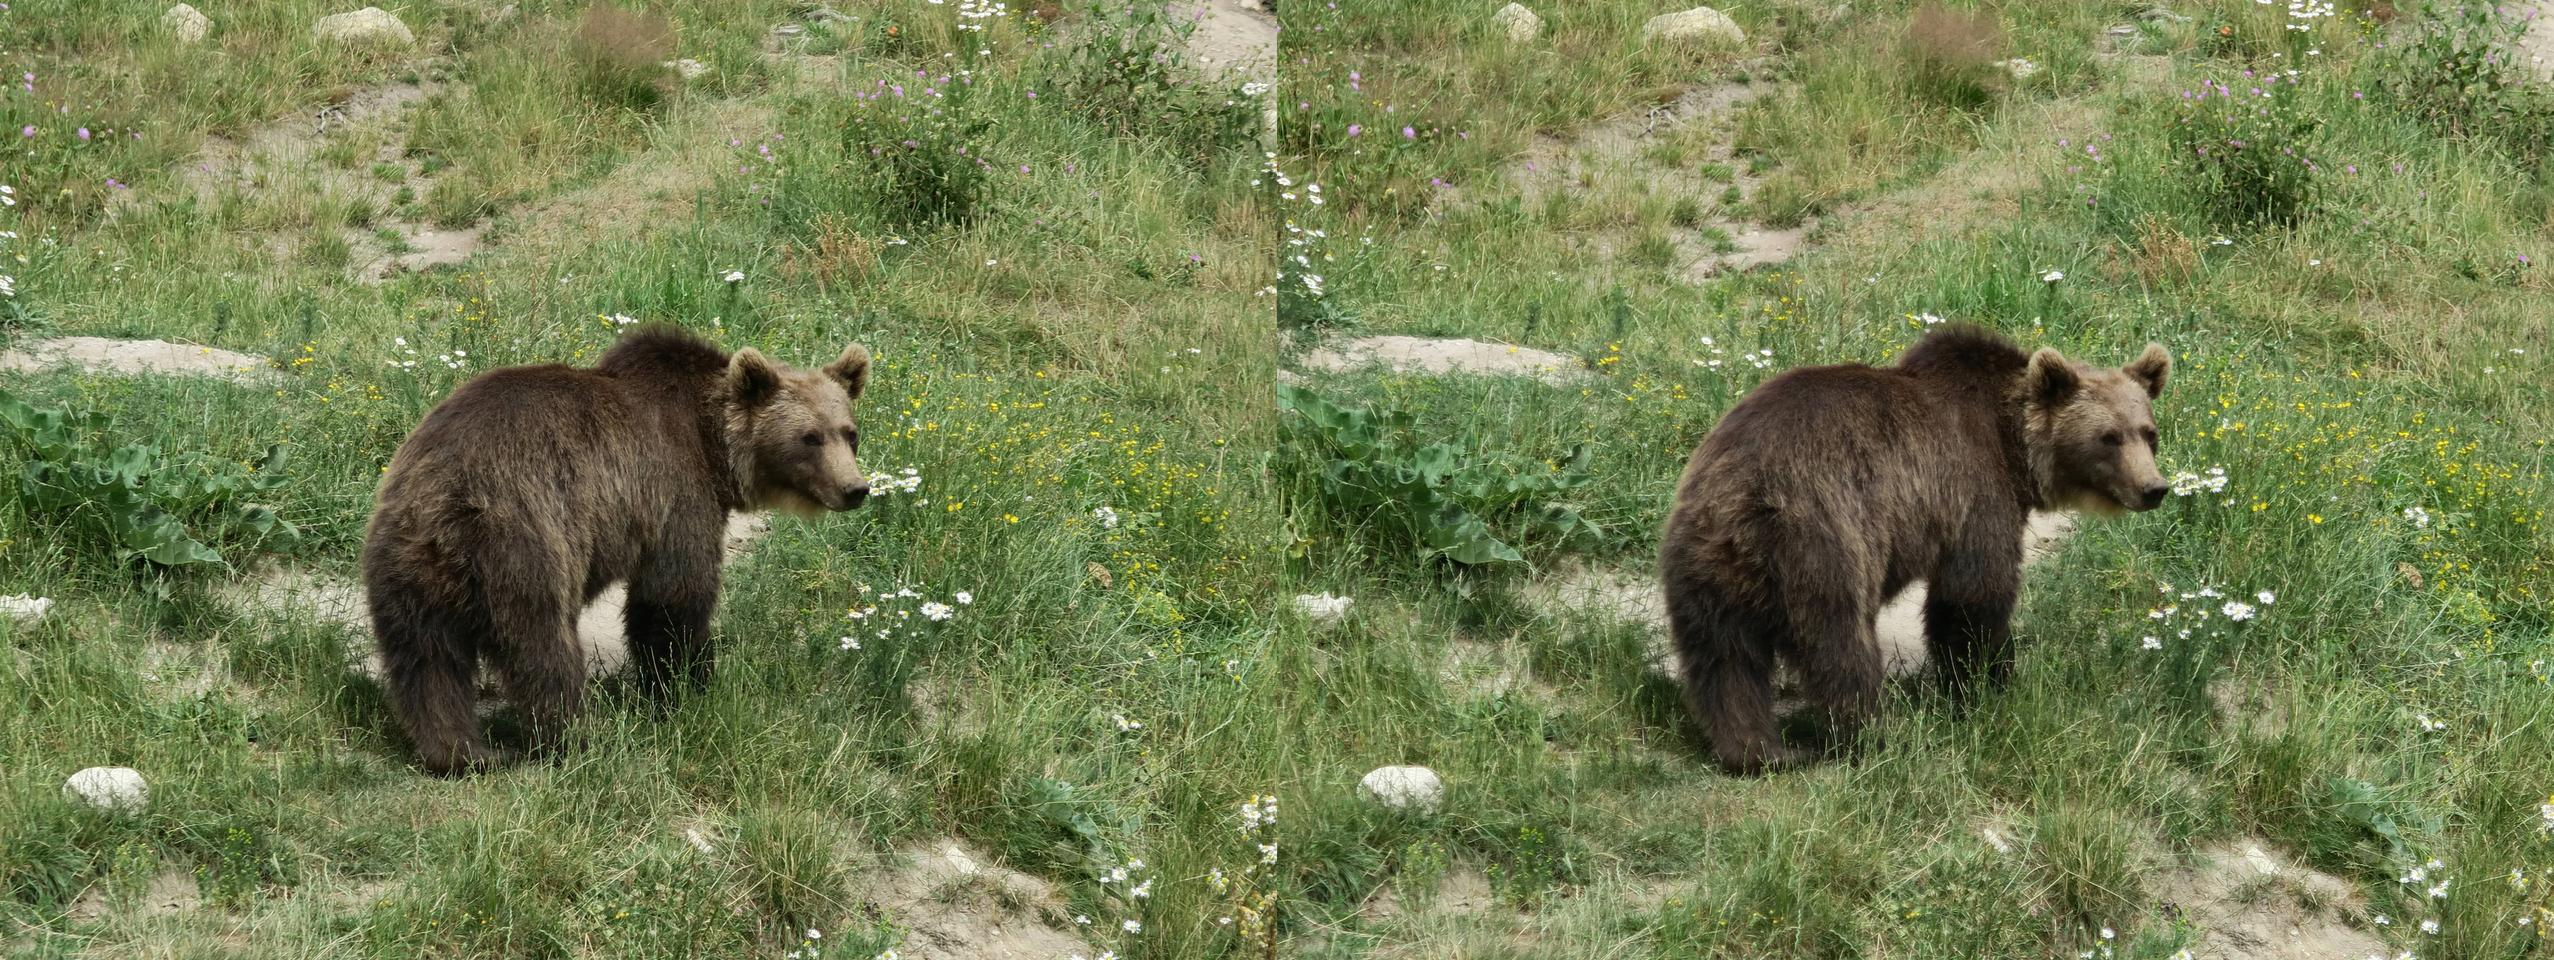 Bear in a French animal park